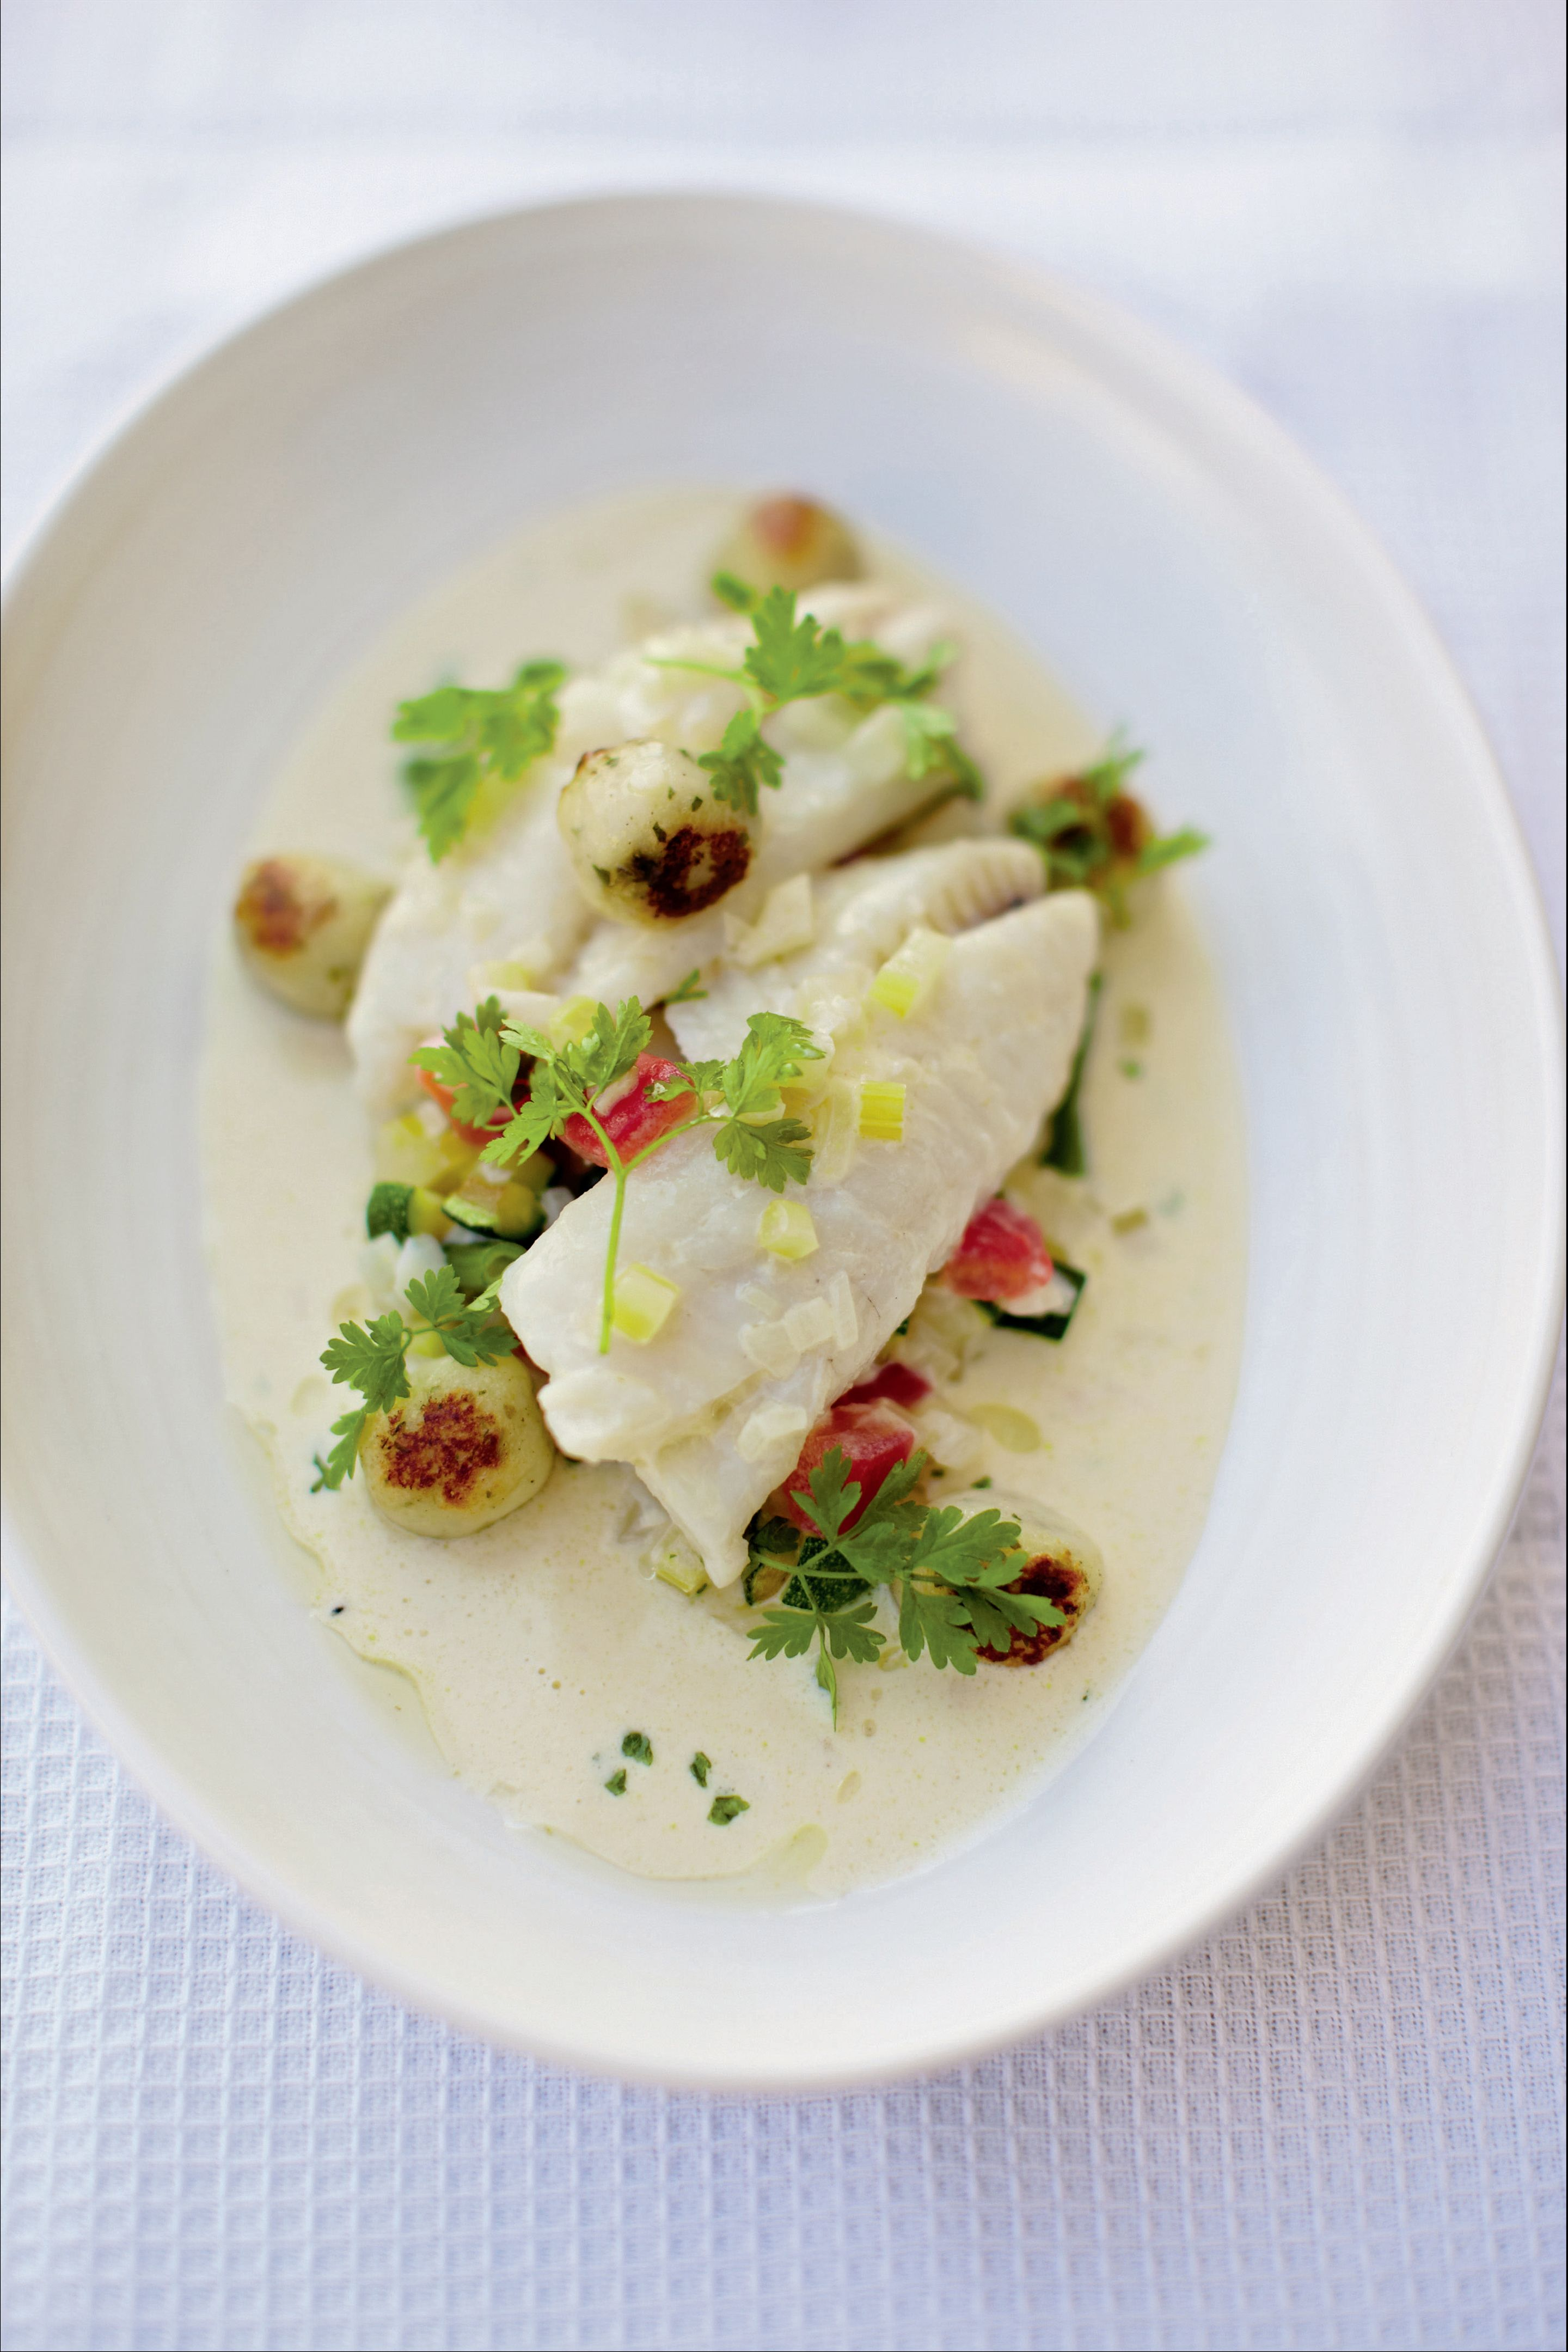 Poached whiting, summer vegetable broth and chervil dumplings